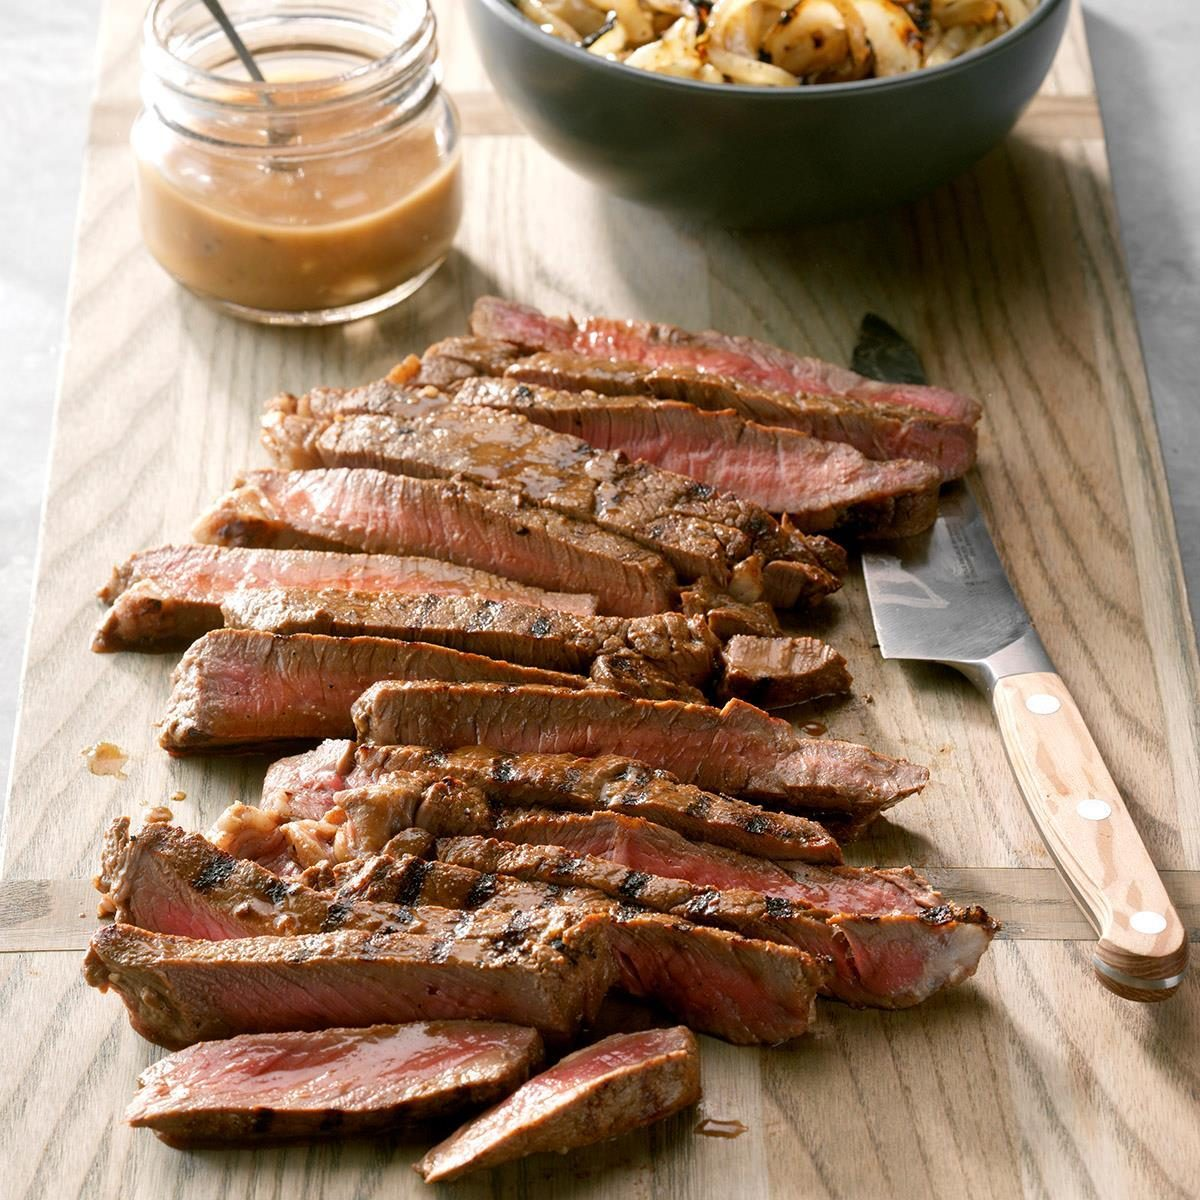 Marinated Steak With Grilled Onions Exps Fttmz19 102685 C03 06 2b Rms 4